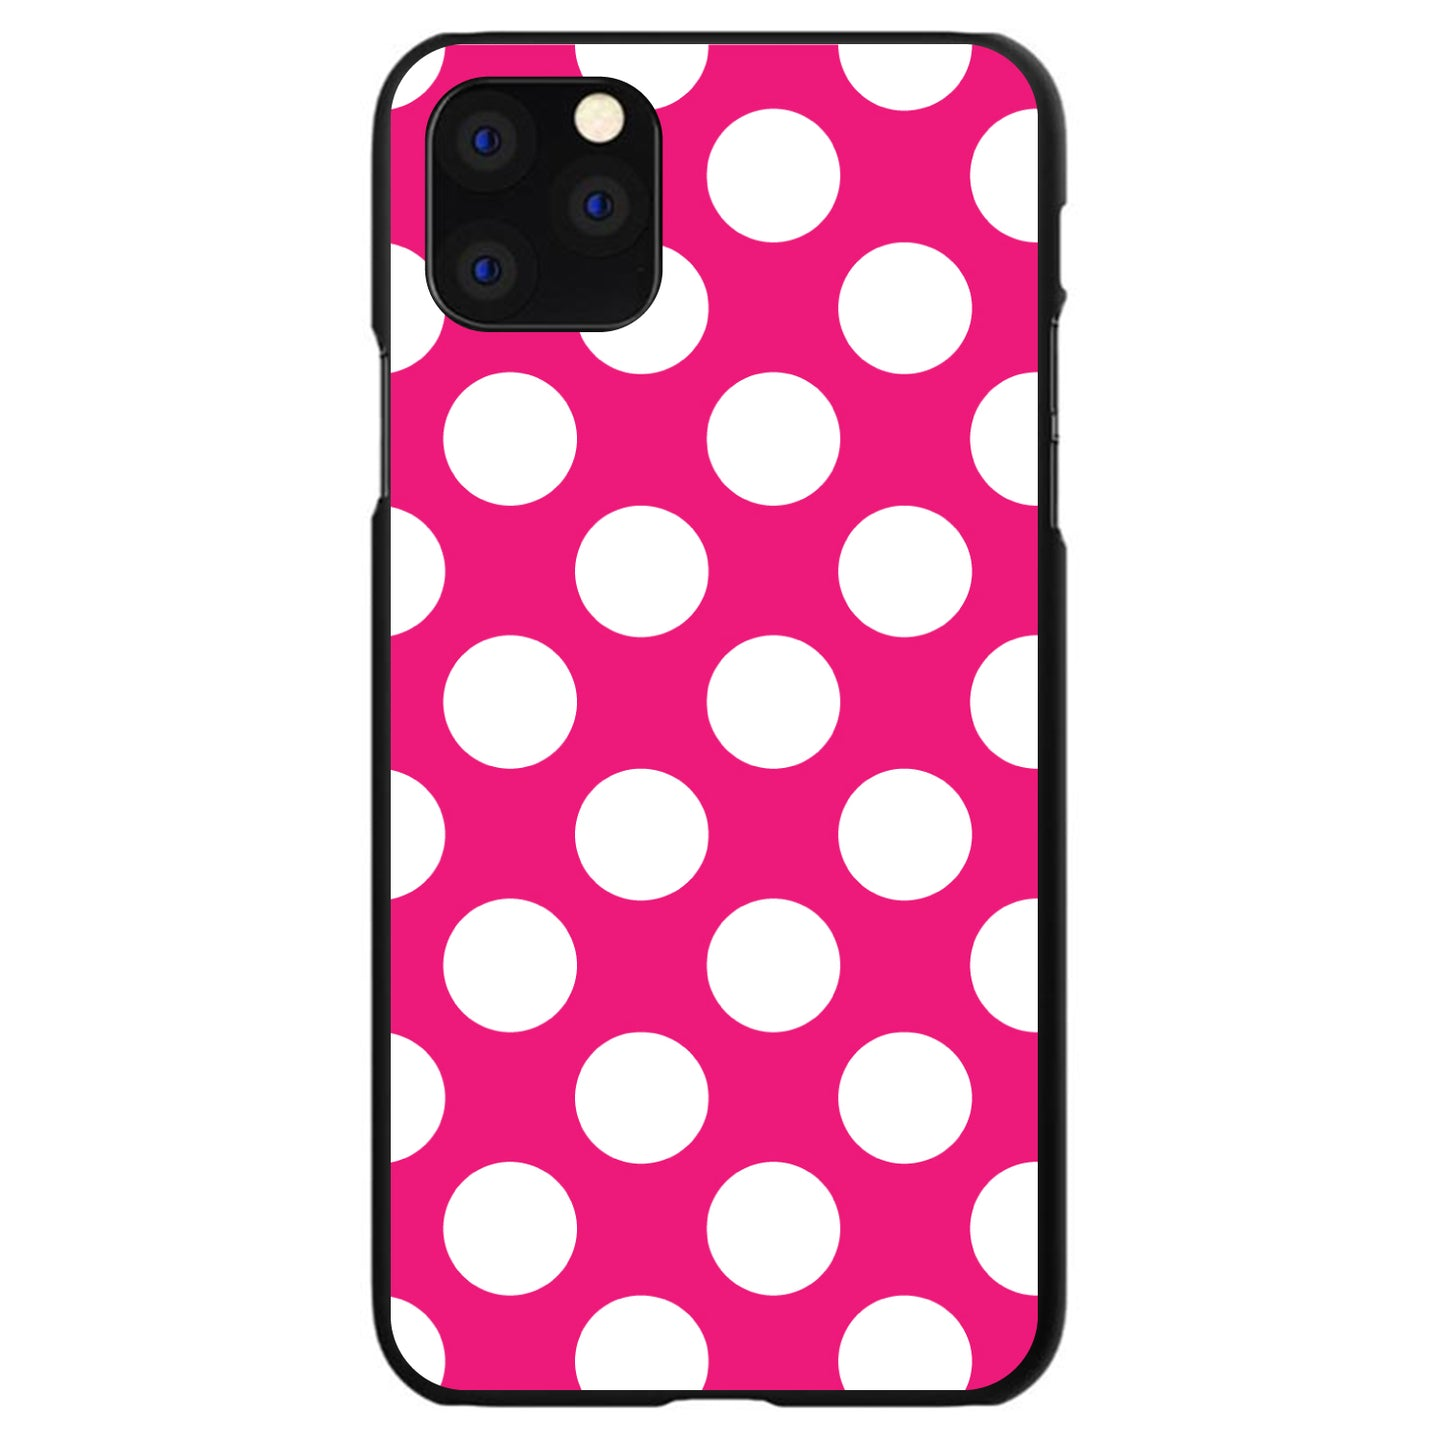 DistinctInk® Hard Plastic Snap-On Case for Apple iPhone - White & Hot Pink Polka Dots